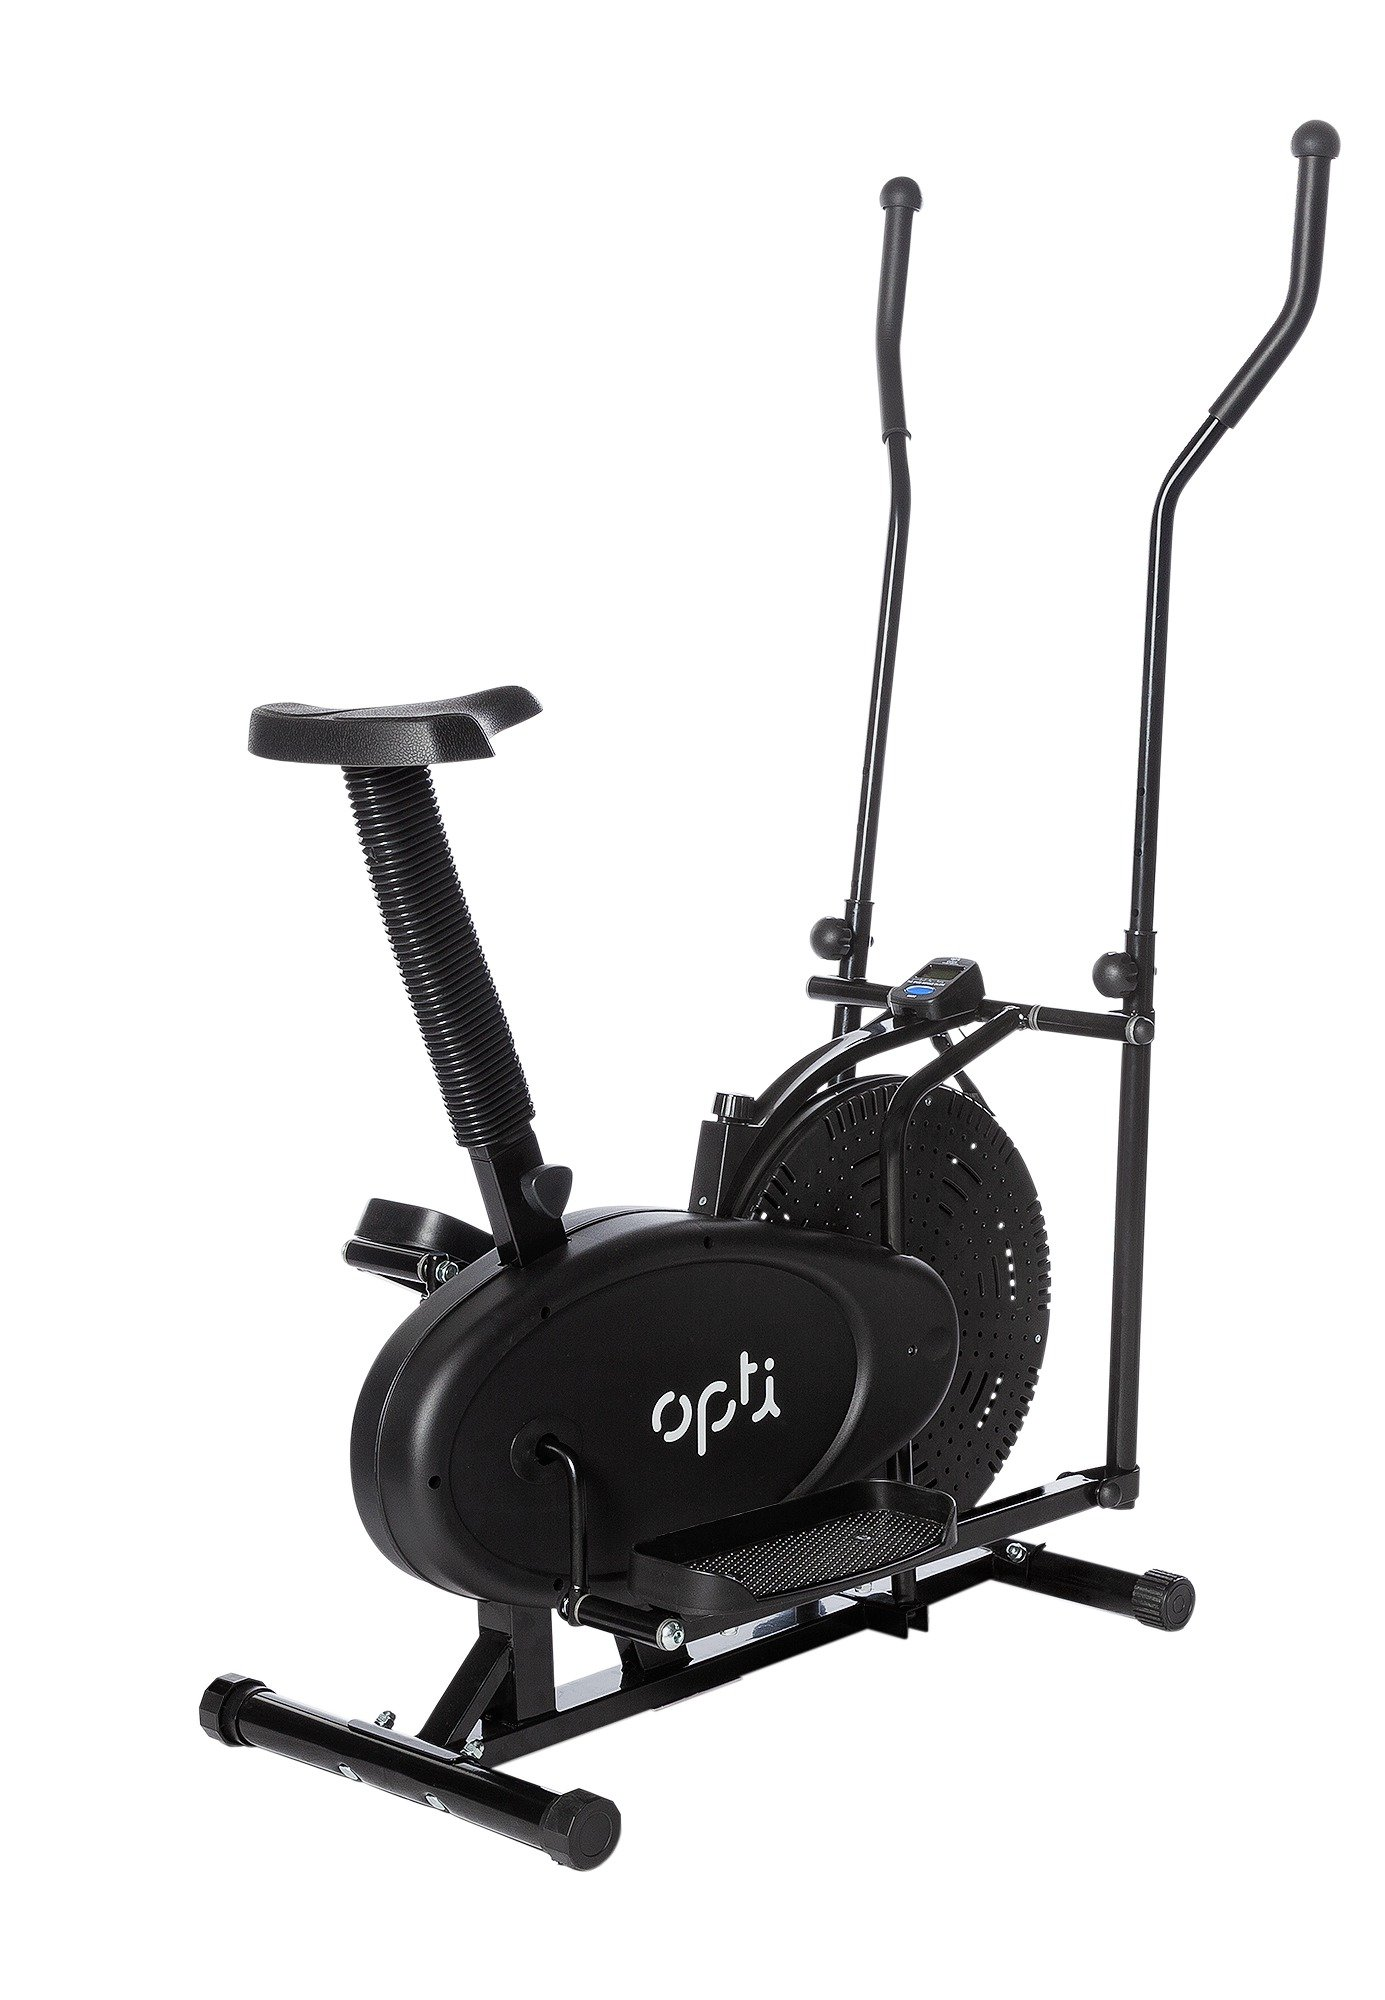 Opti 2 in 1 Cross Trainer and Exercise Bike lowest price